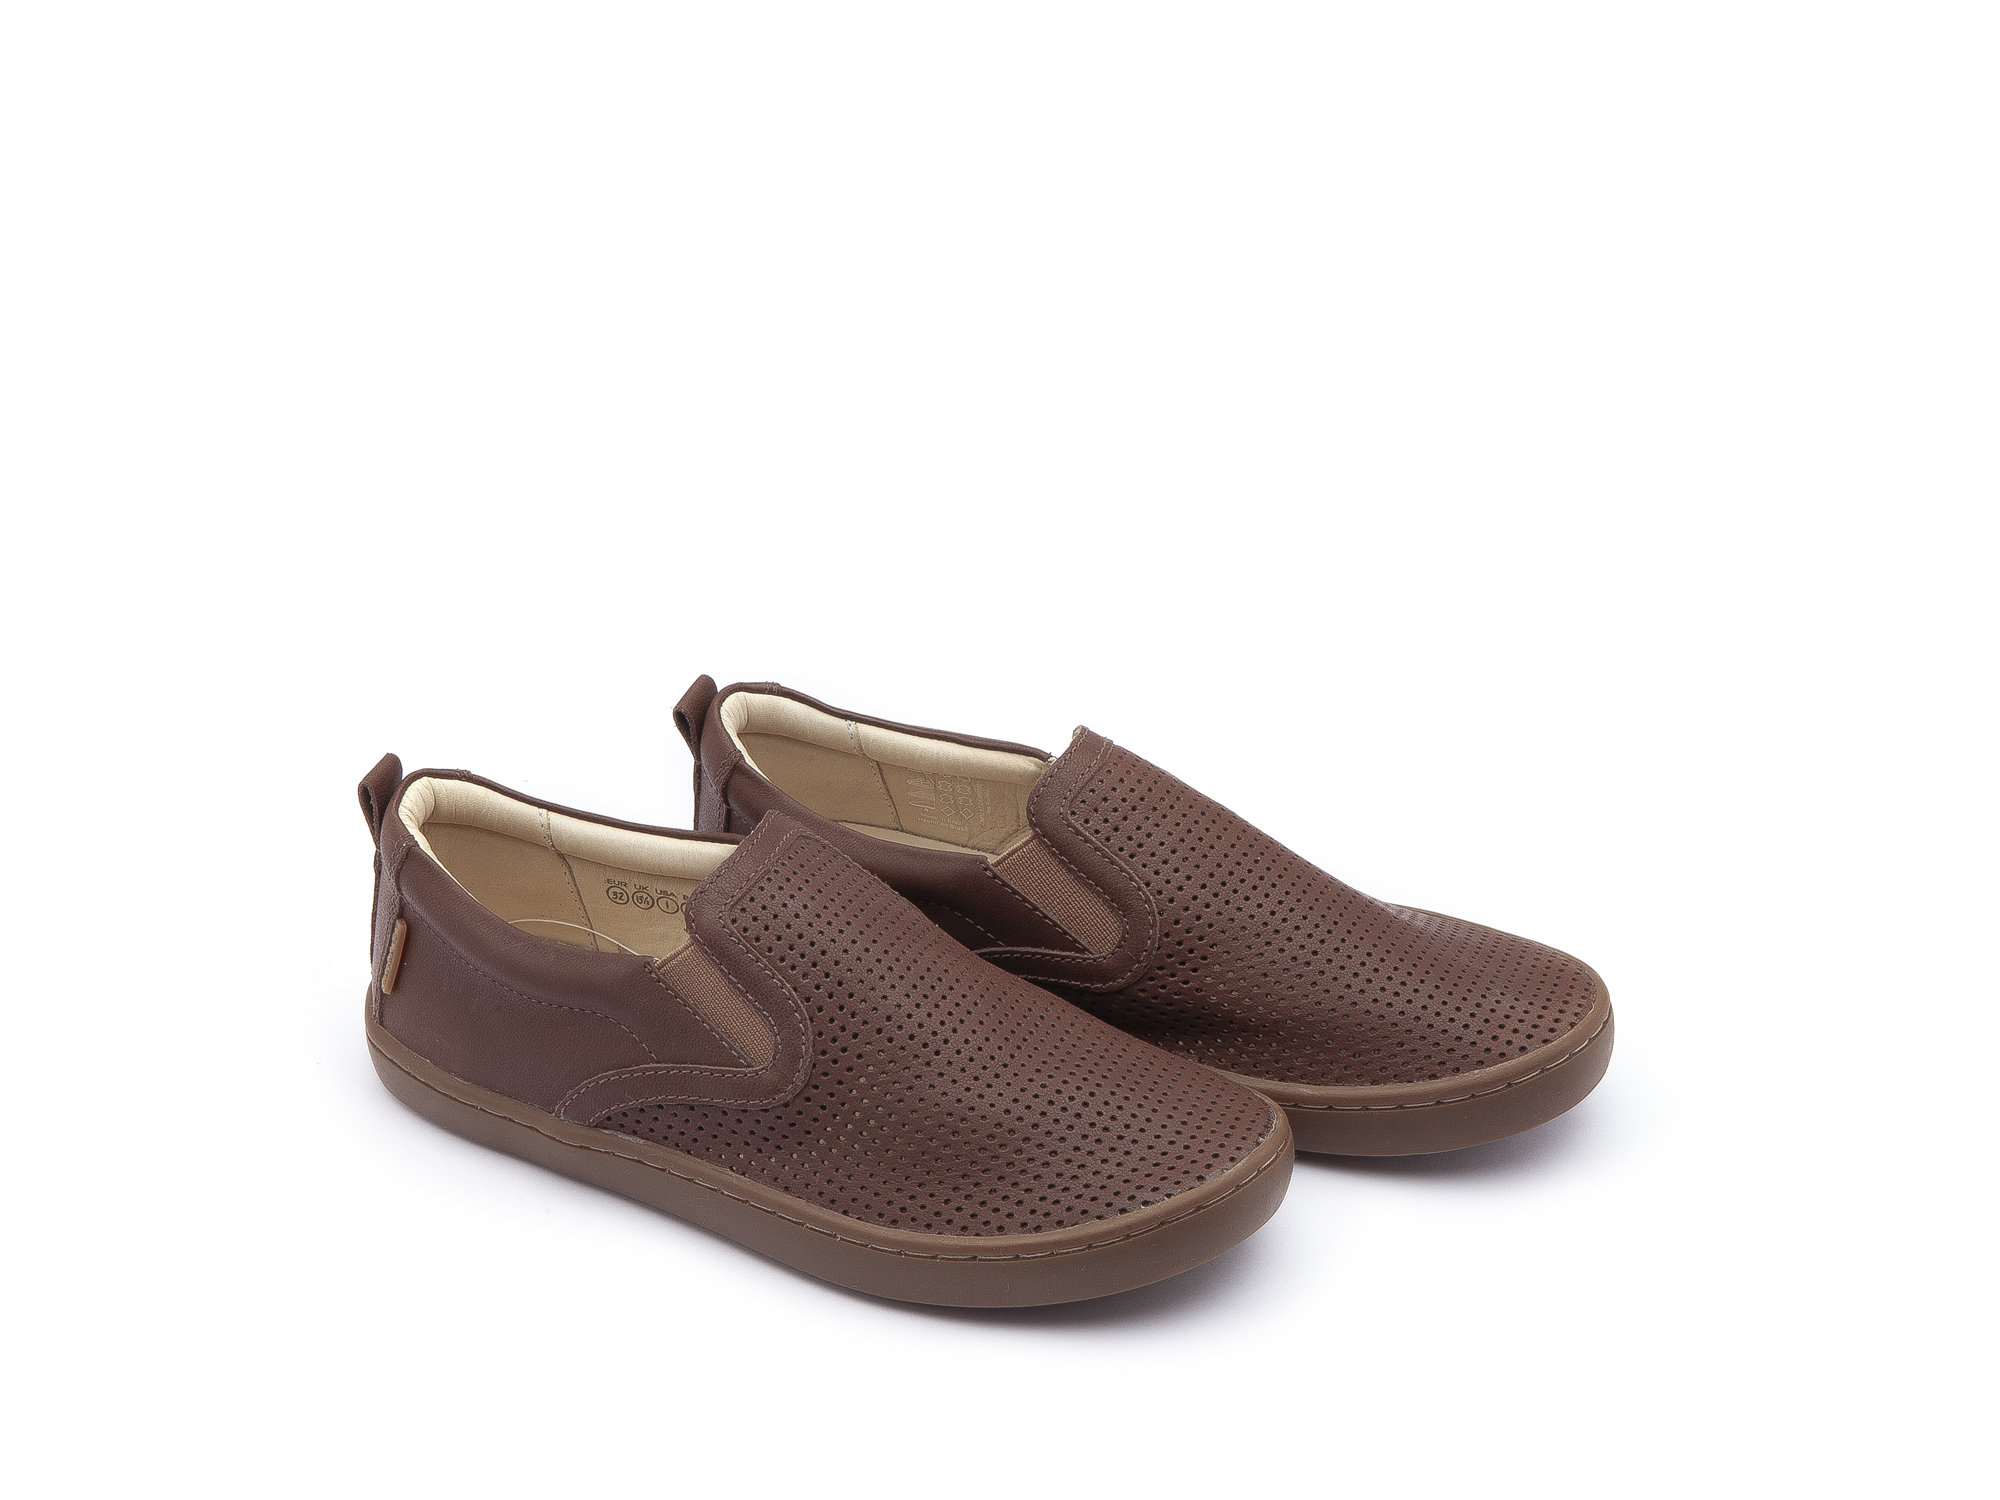 Sneaker Casual Straw Old Brown Holes/ Old Brown Junior 4 à 8 anos - 0